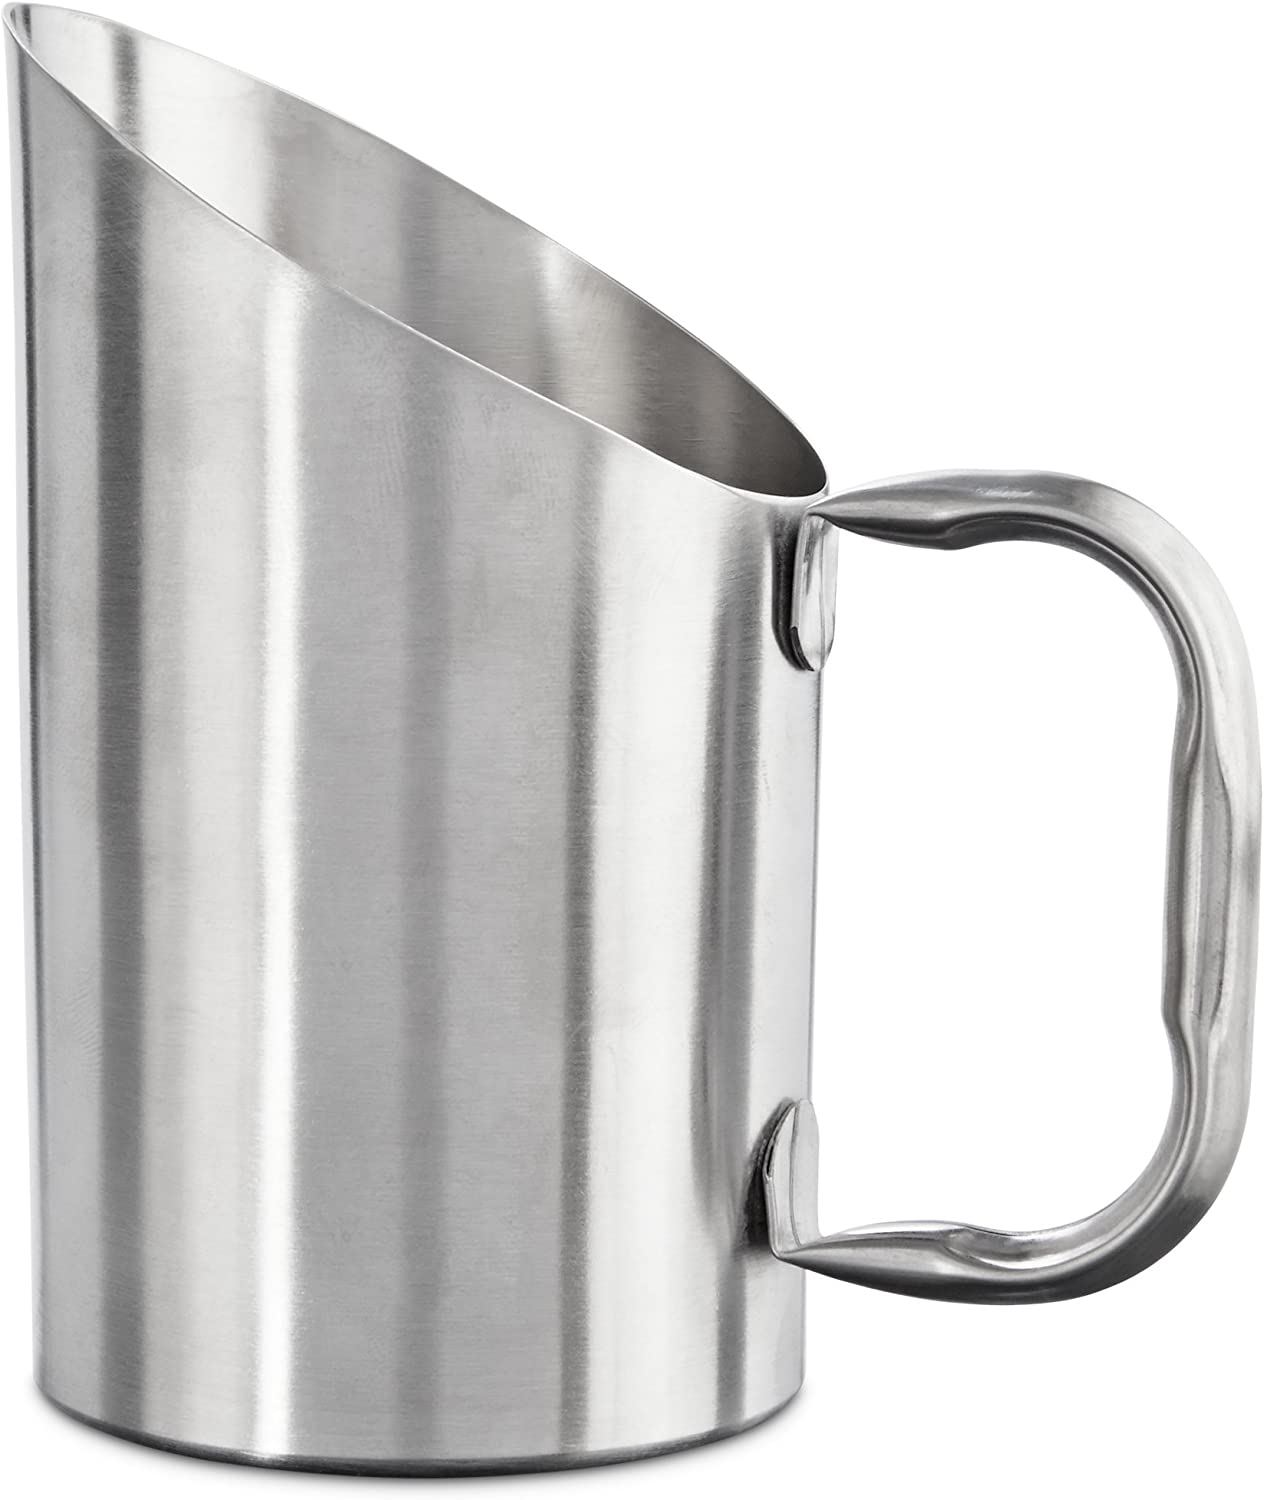 Bowlmates Stainless Steel Dog Food Scoop, 1 Cup, Small, Silver